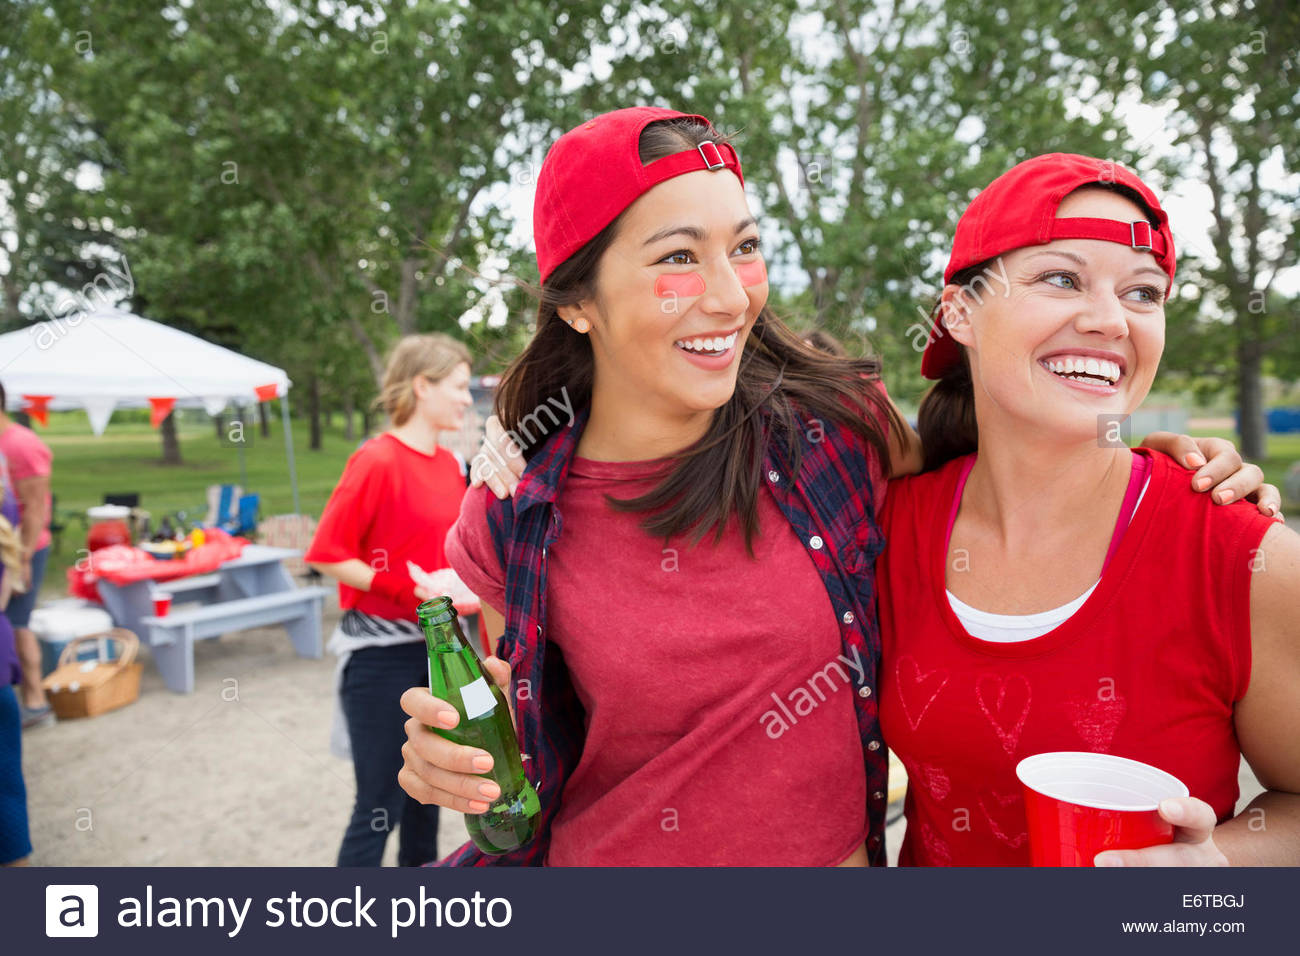 Women smiling together at barbecue in field Photo Stock